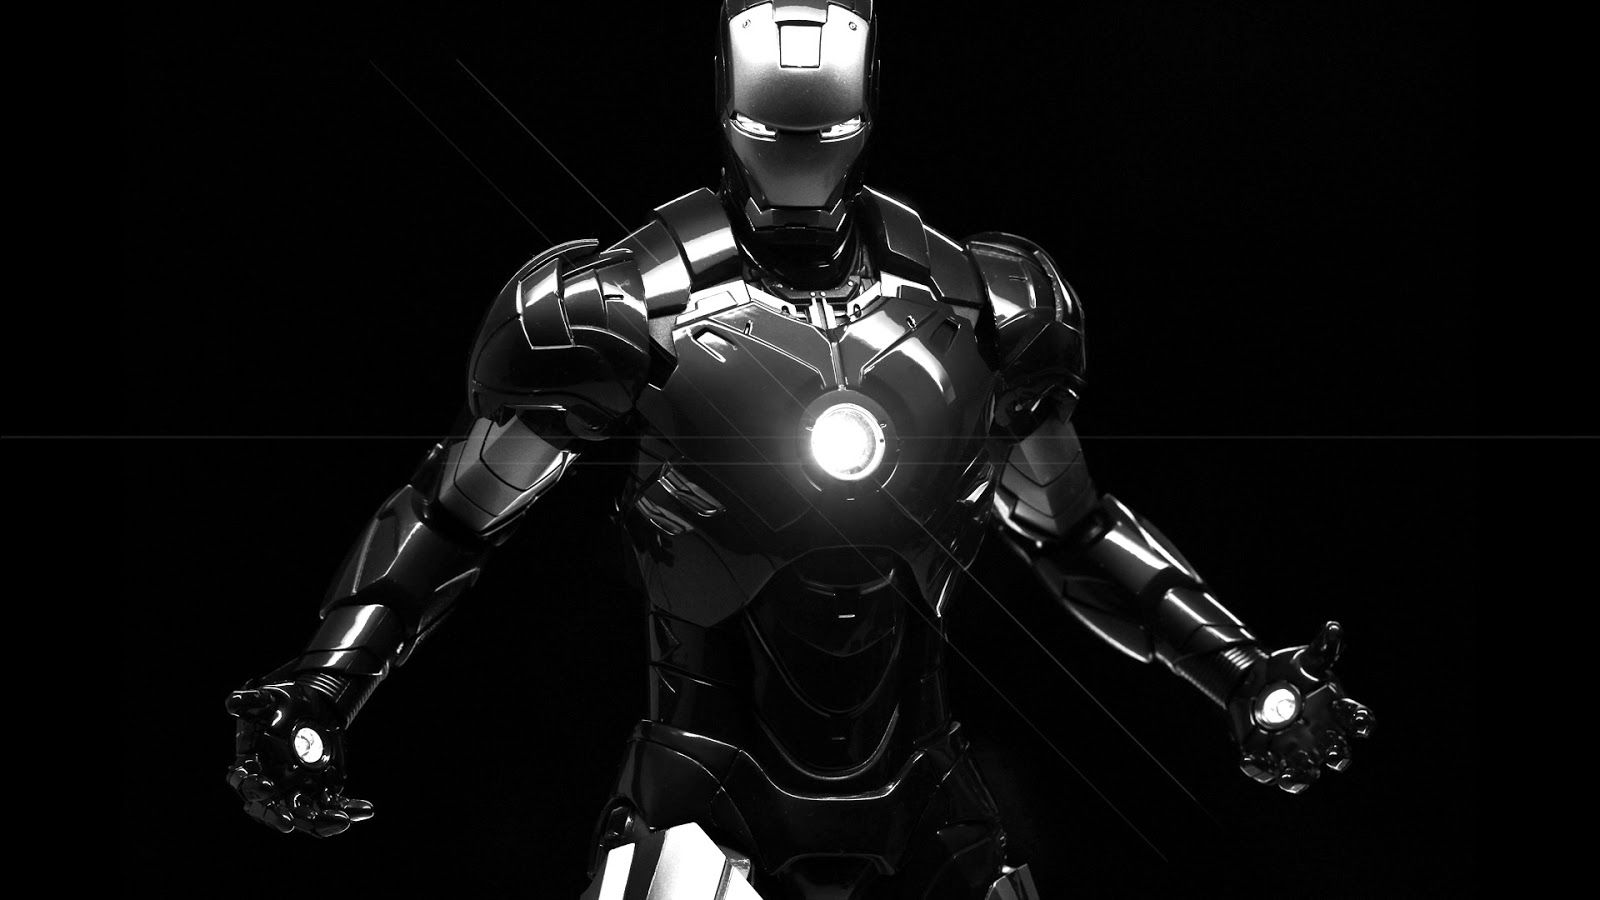 iron man 3 black and white photos black and white phototastic pinterest. Black Bedroom Furniture Sets. Home Design Ideas